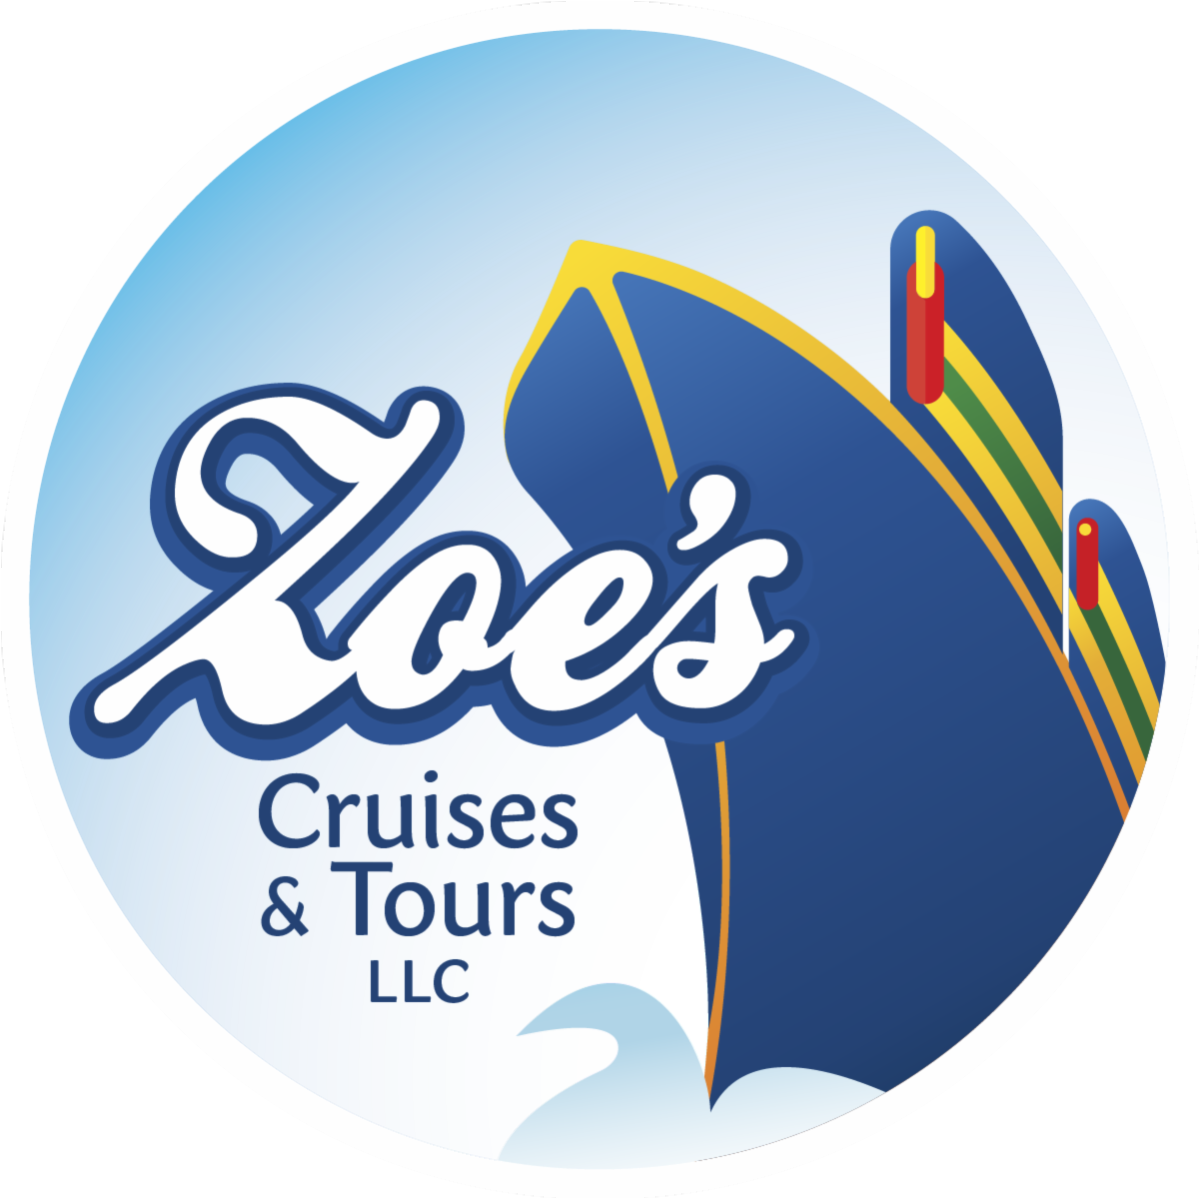 zoes2021_logo-03.png